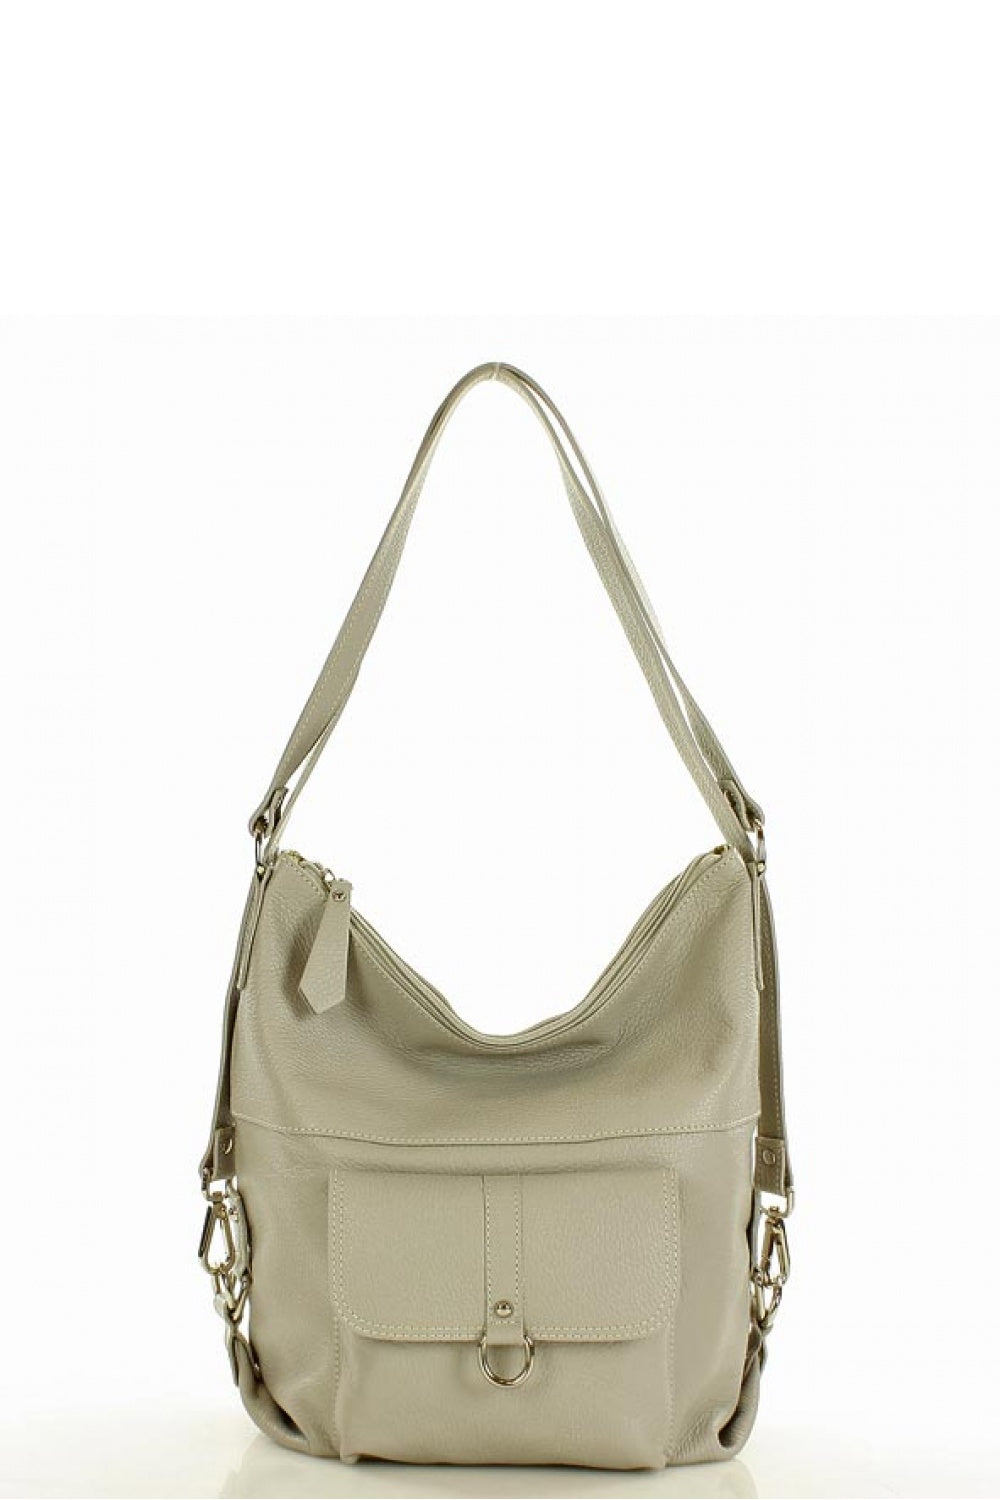 Natural leather bag model 119102 Mazzini